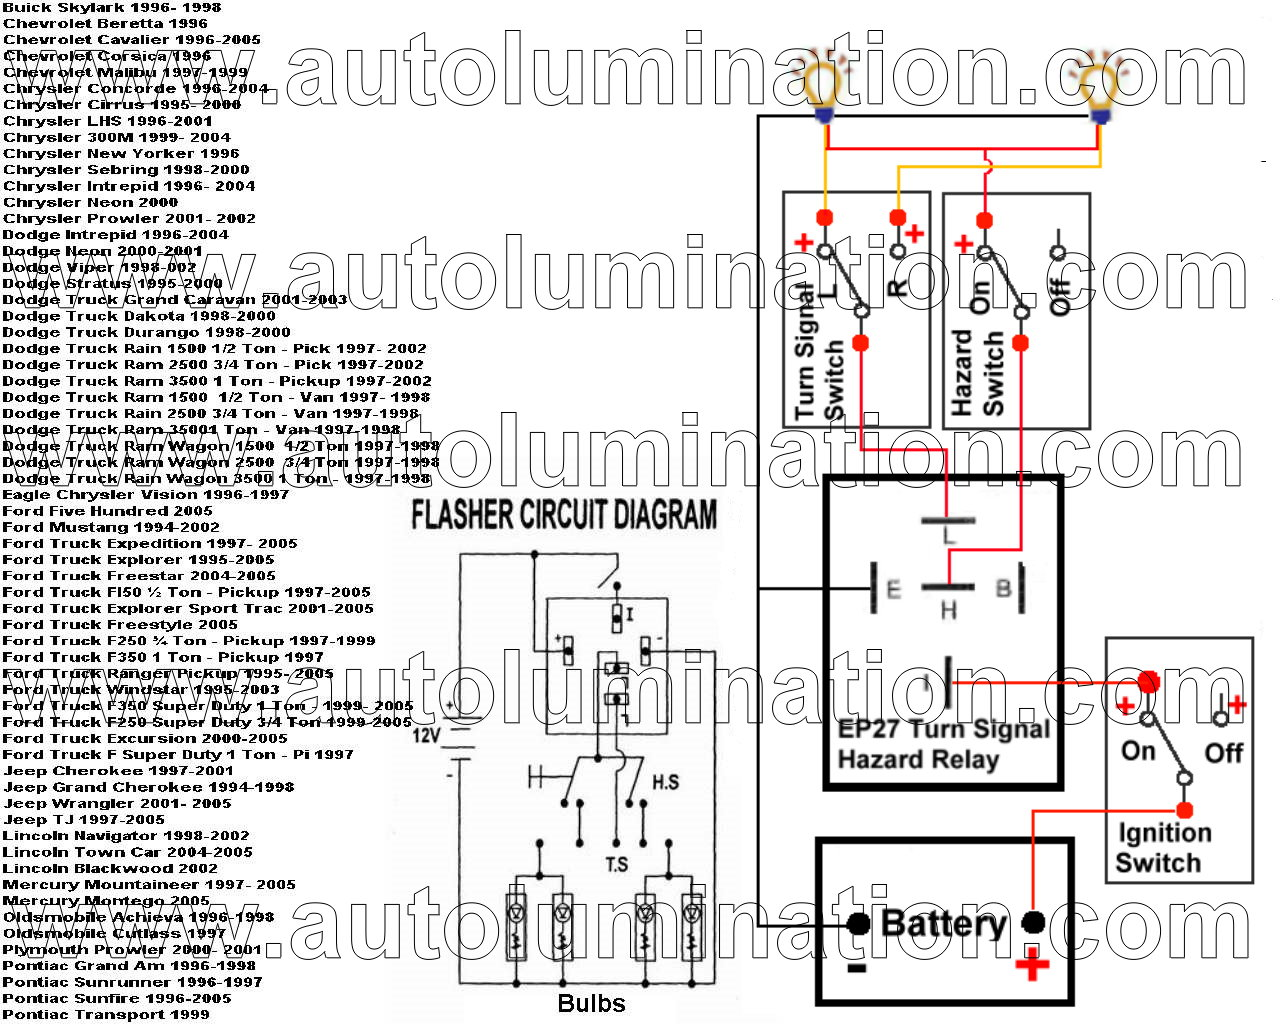 2 Prong Flasher Wiring Diagram Free Download • Oasis-dl.co